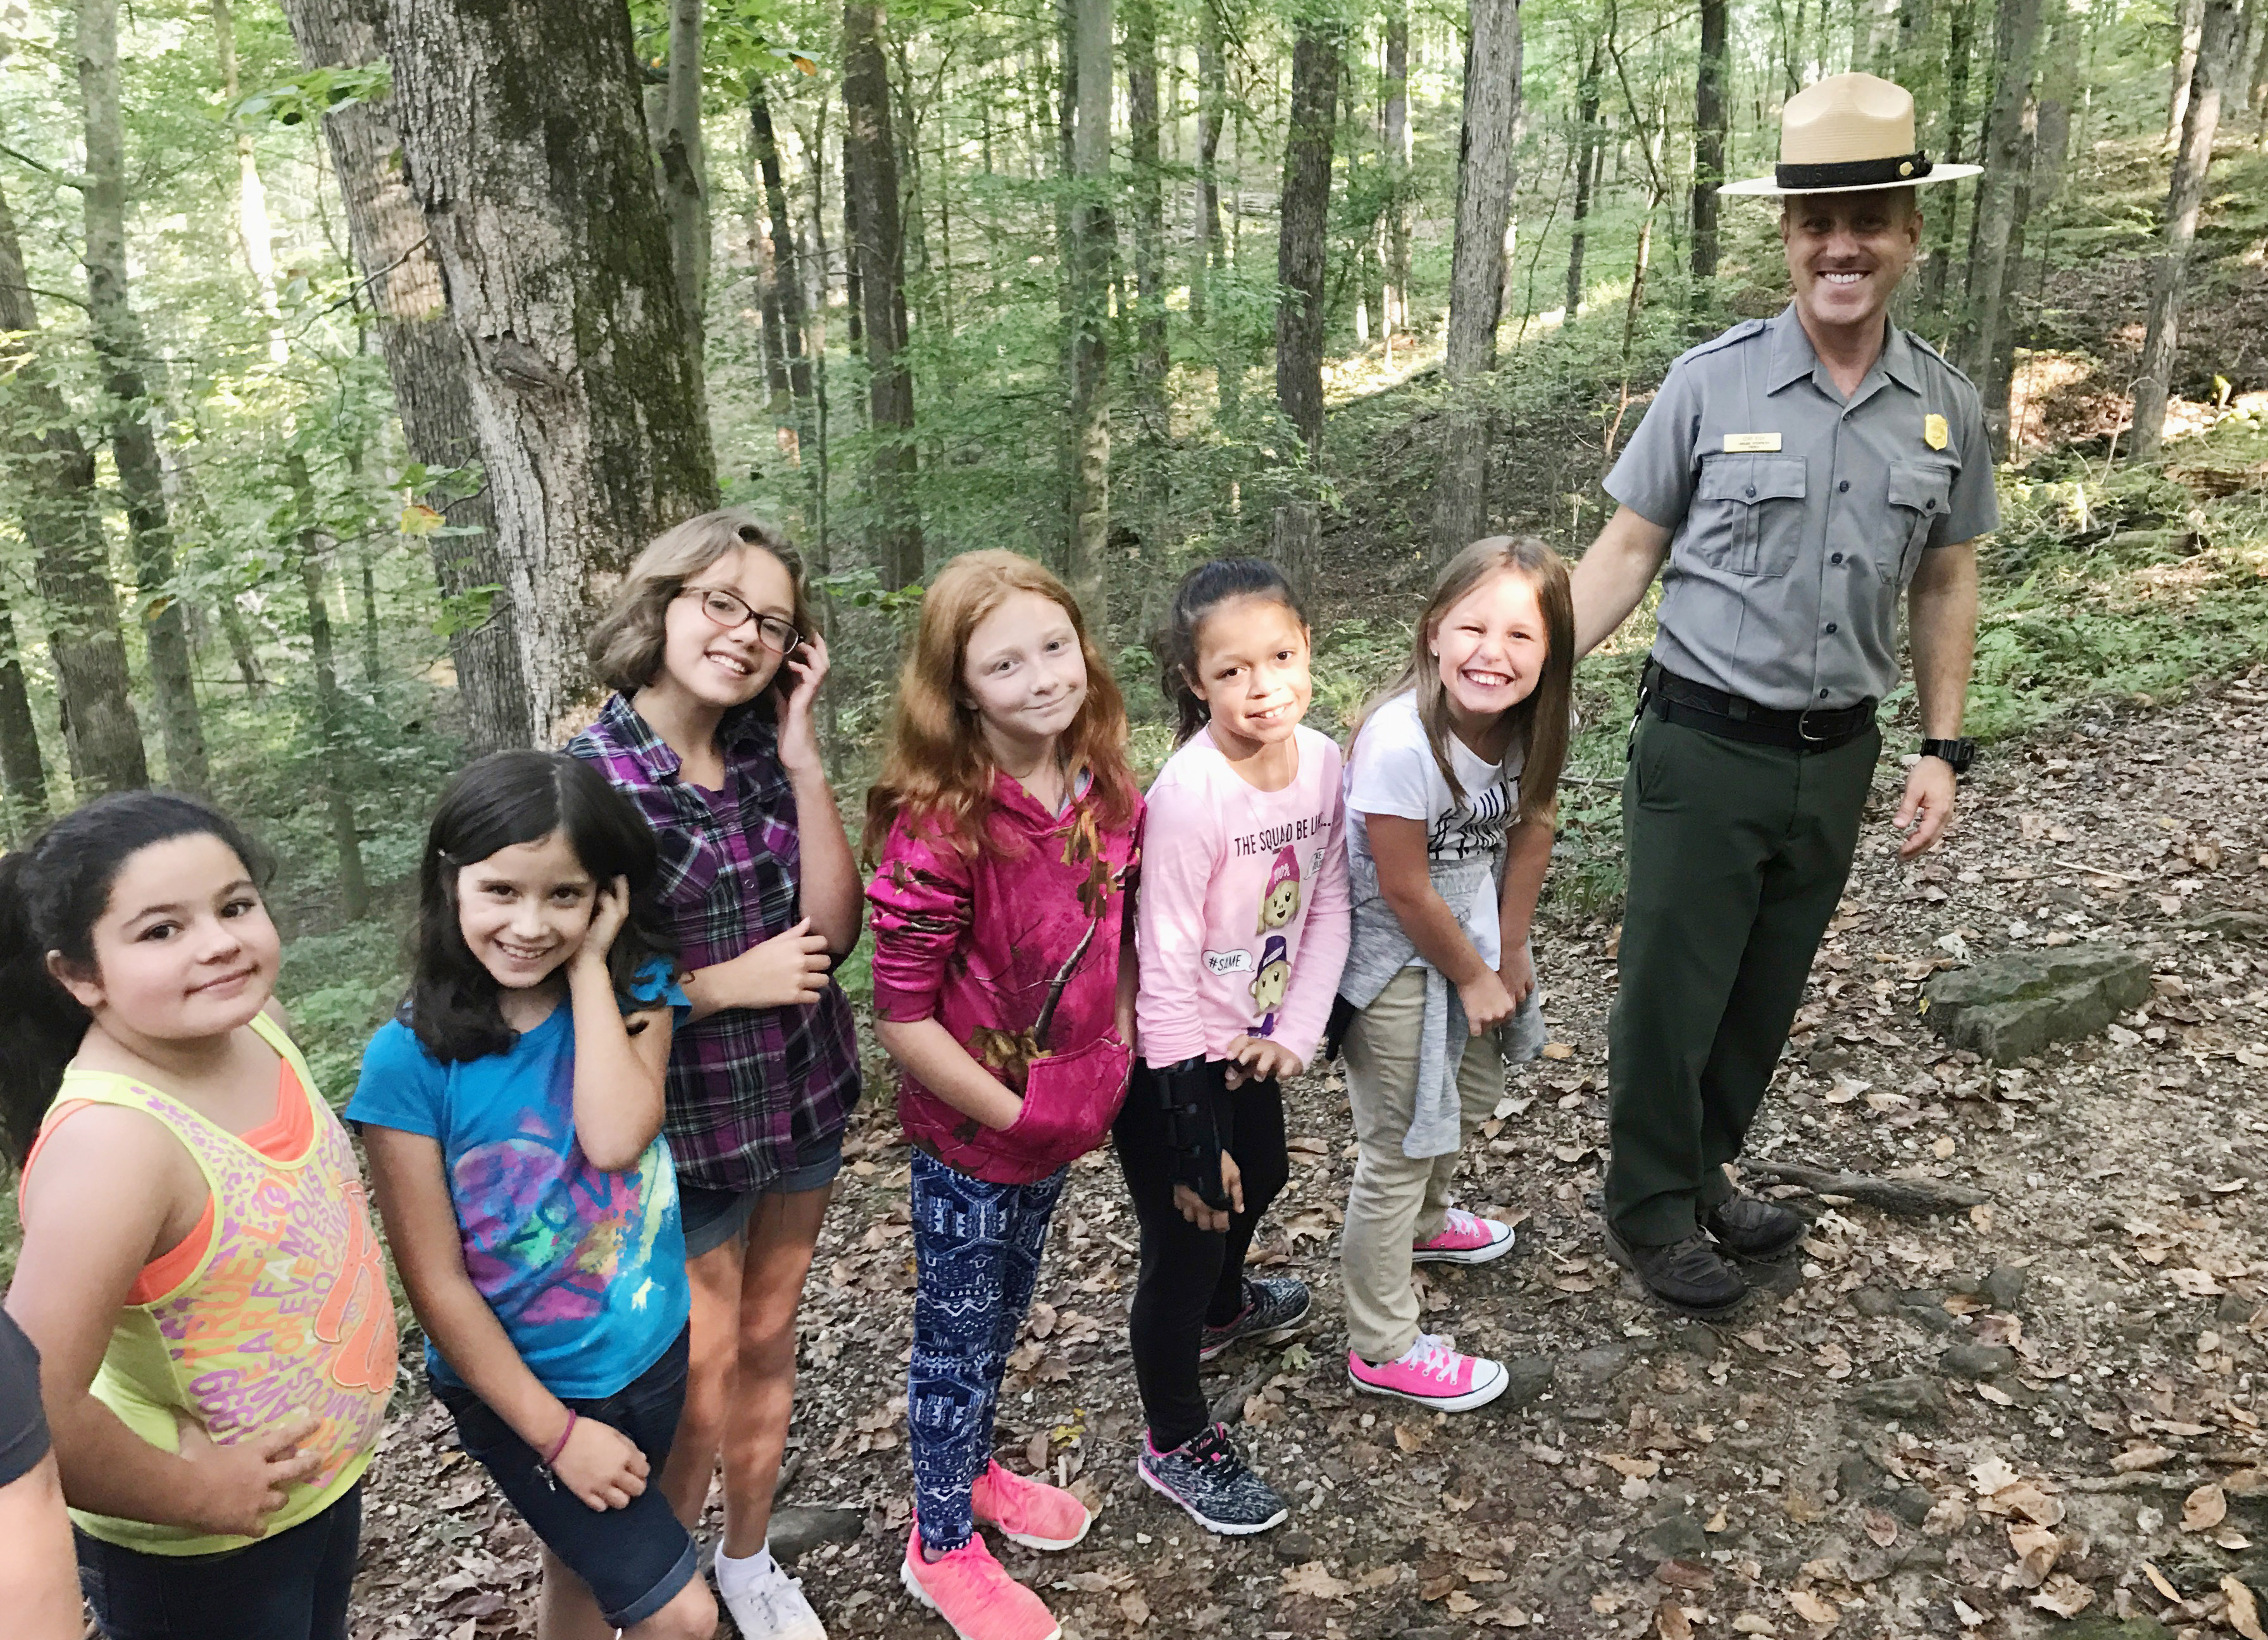 CES fourth-graders pose for a photo with a park ranger. From left are Brooklyn Boudreaux, Zehavah Negron, Trinity McFarland, Savannah Wethington, Breona Bridgewater and Madisyn Bradfield.